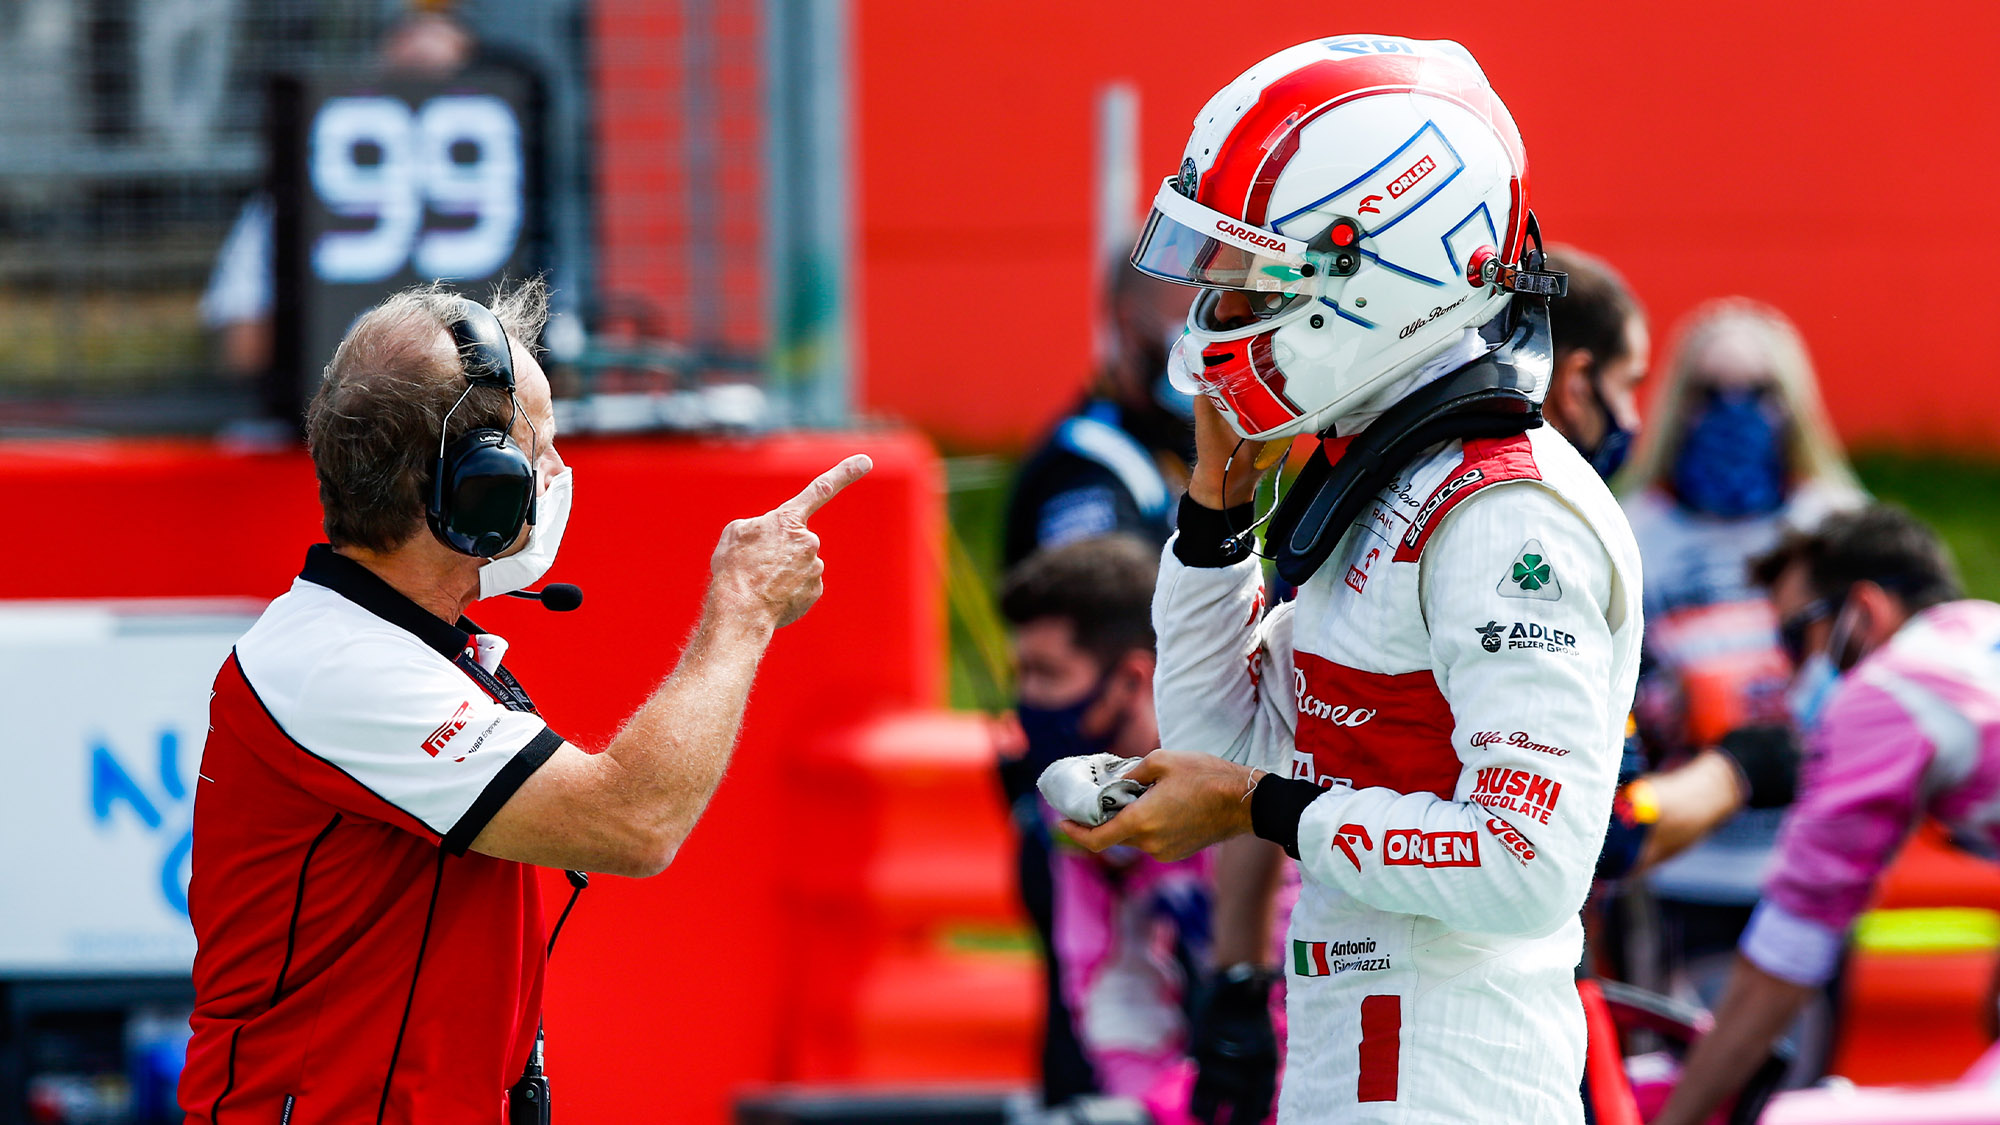 Engineer pointing at Antonio Giovinazzi at Silverstone in 2020